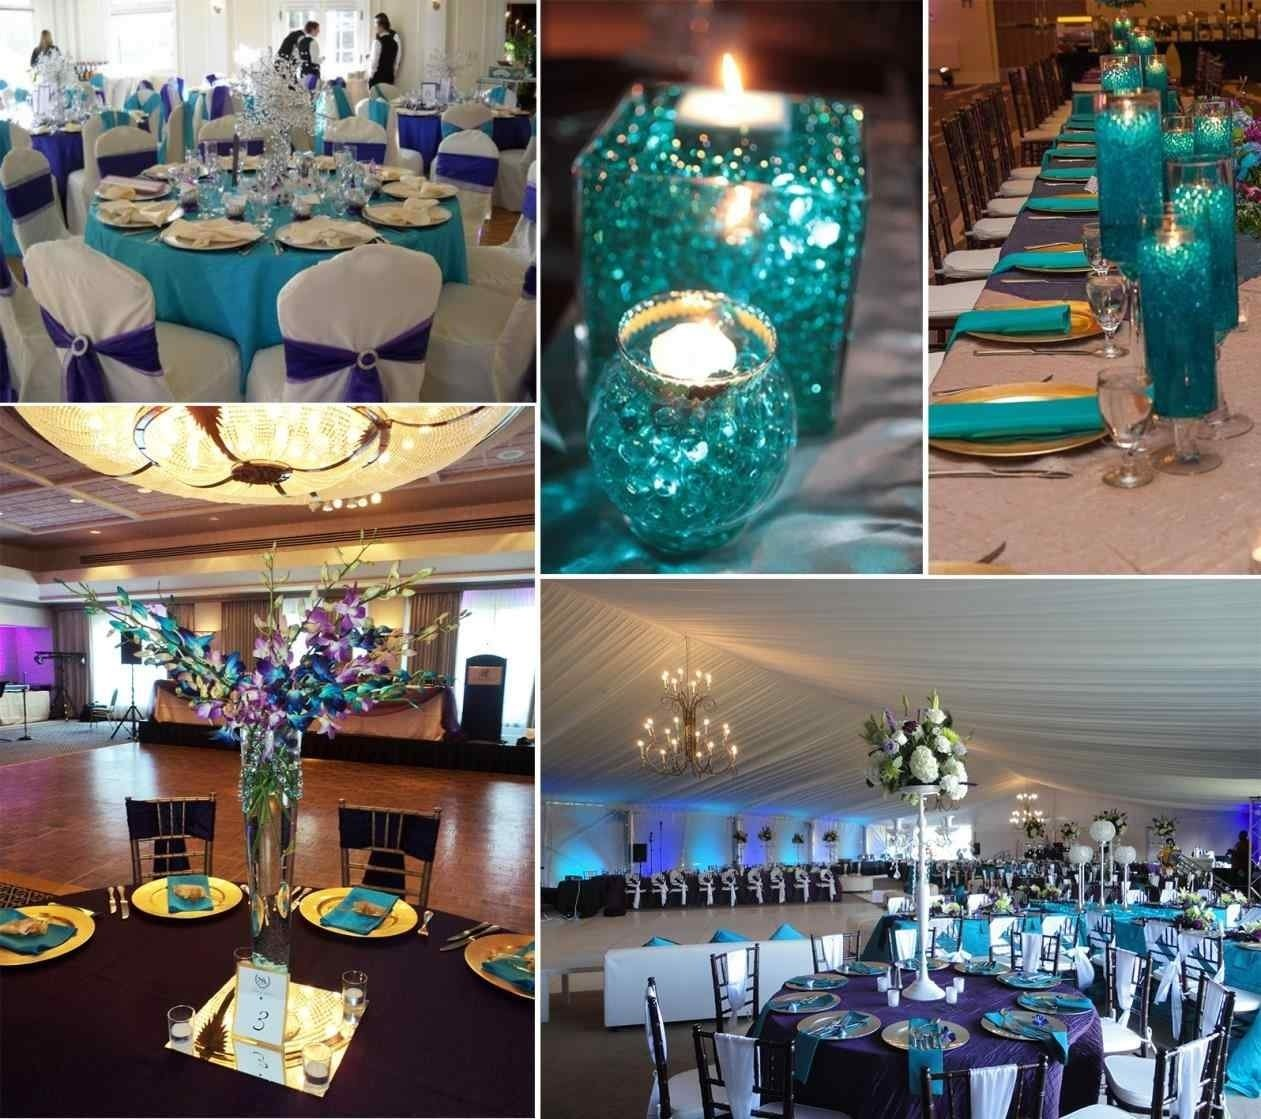 10 Pretty Teal And Purple Wedding Ideas teal and purple wedding decorations image collections wedding 2020